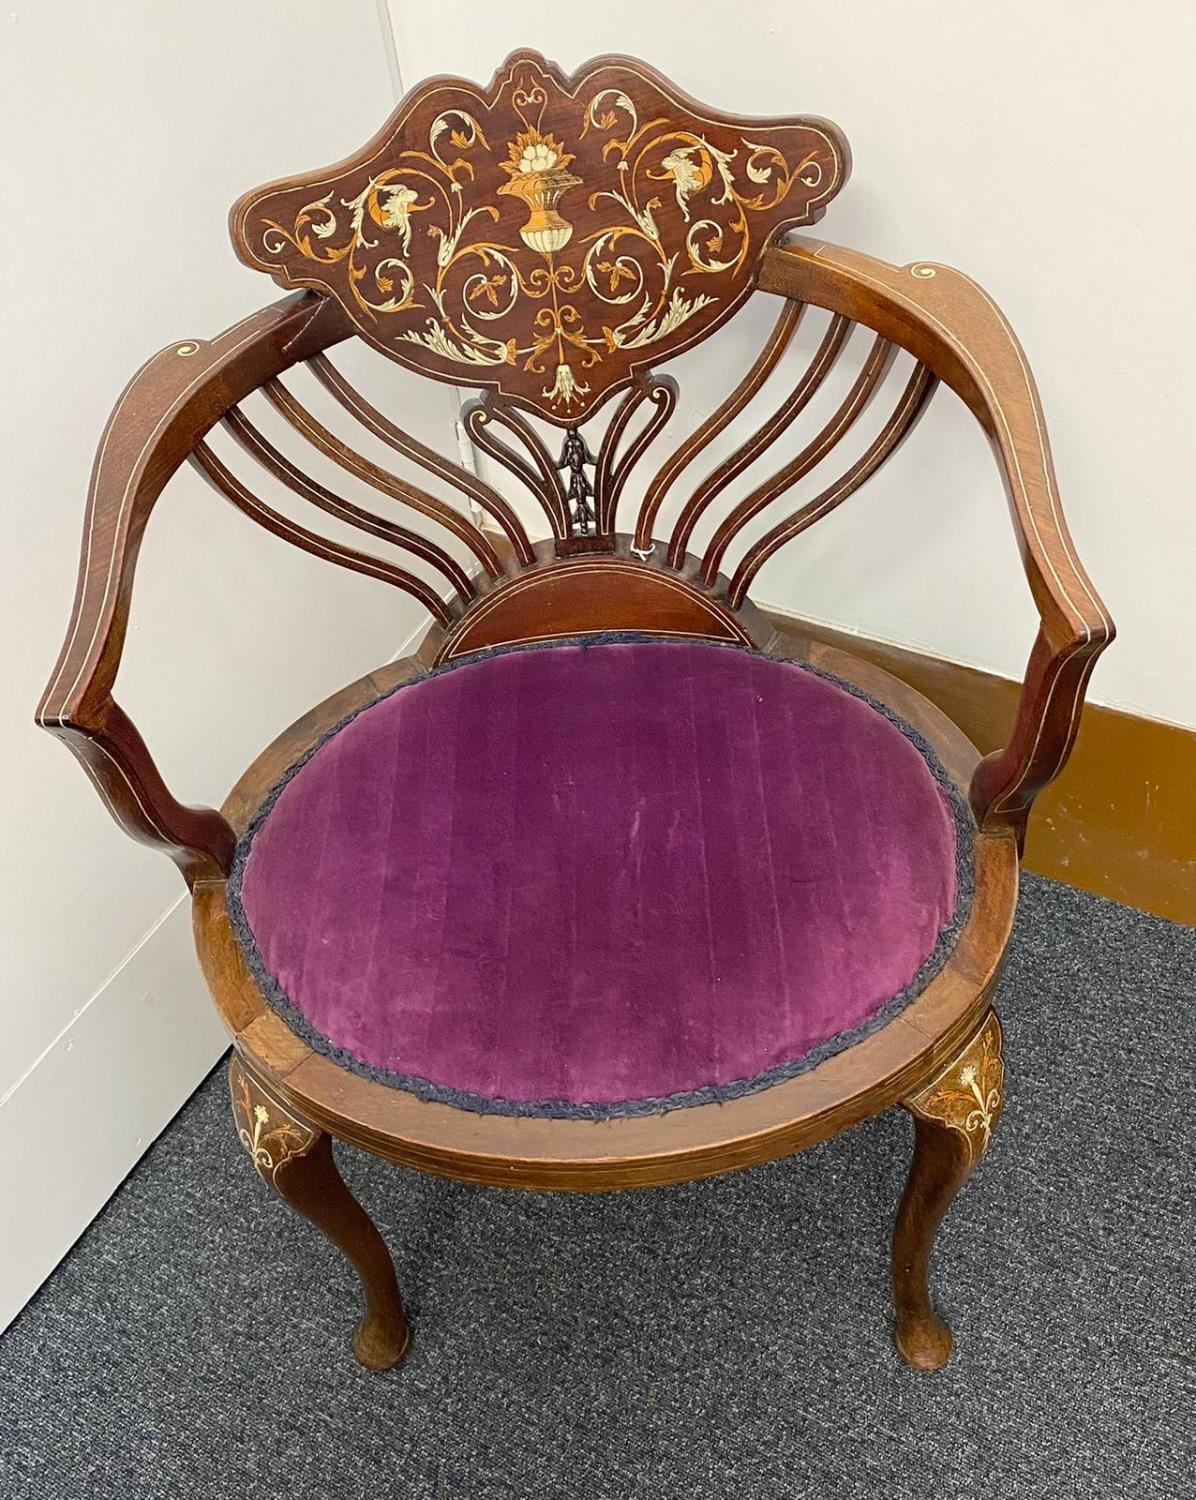 Designed by Stephen Web for Collinson and Lock and Sold by Waring & Gillow in 1890 to the Thomas - Image 2 of 8